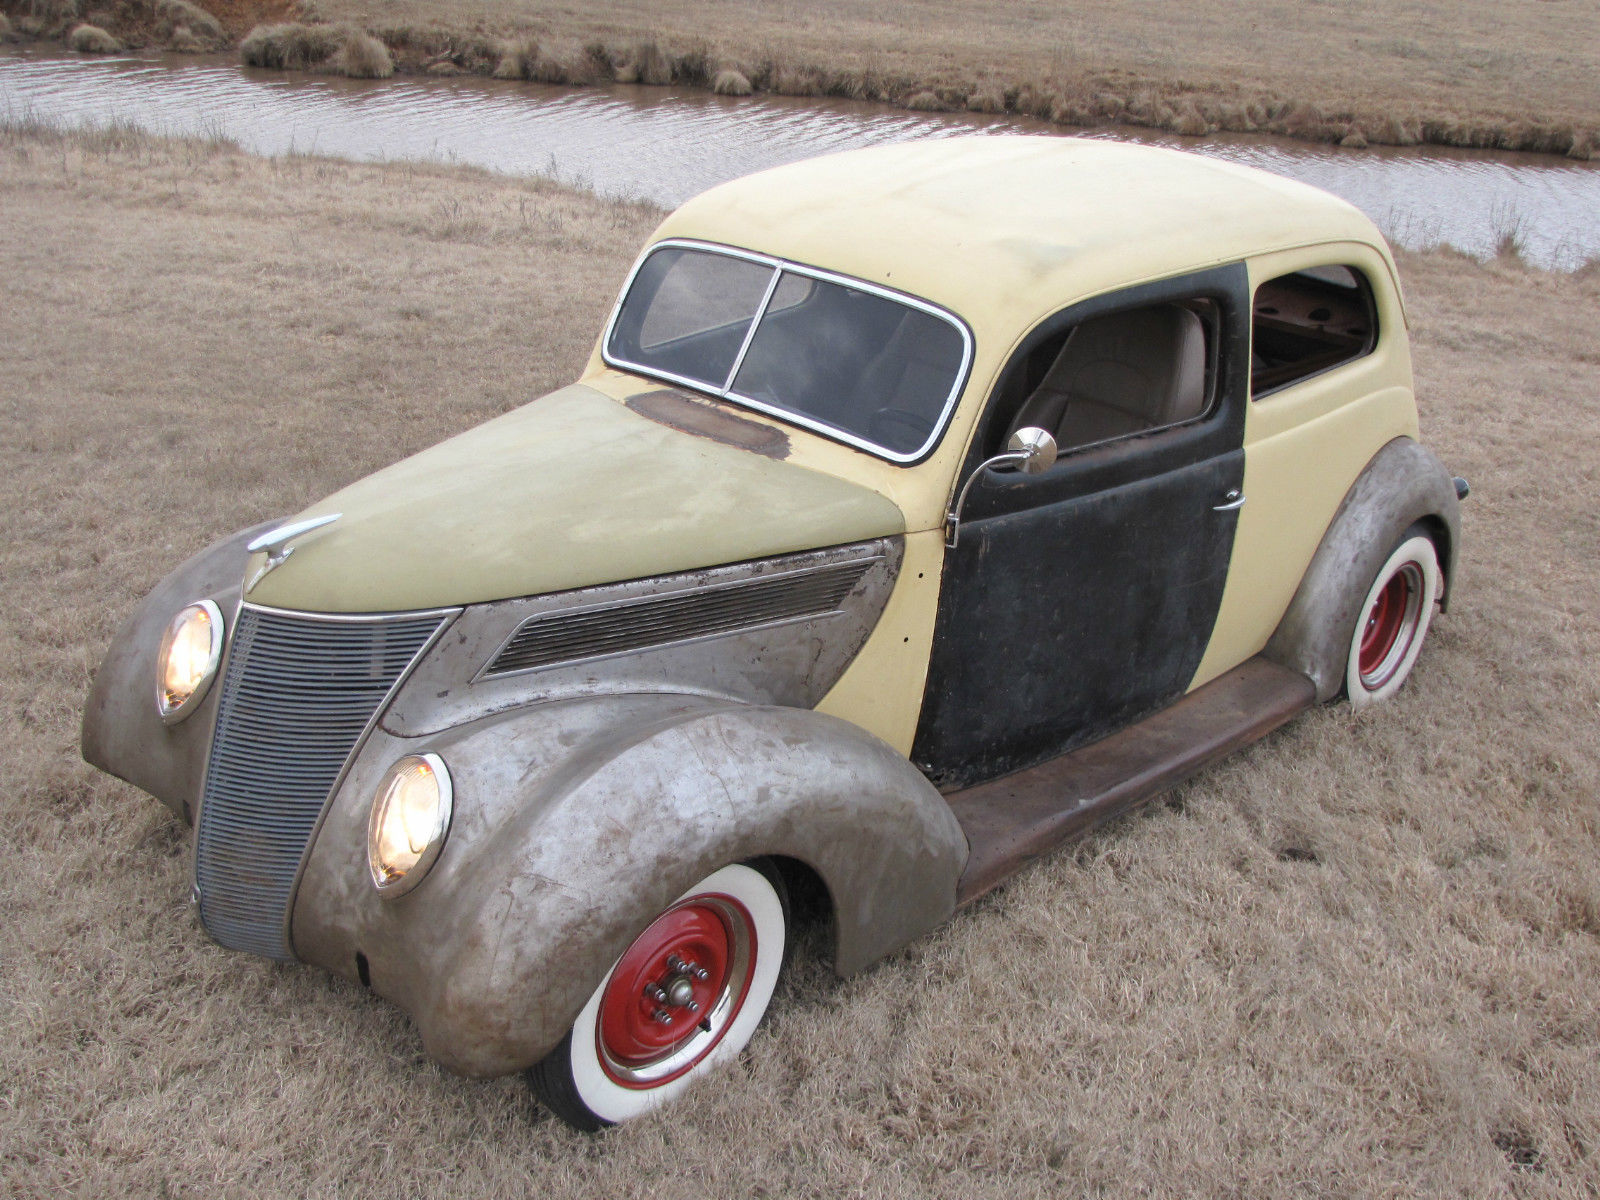 1937 Ford Slantback 2 Door Sedan Running Project With The Patina Rat Rear Wiring Harness Rod Look